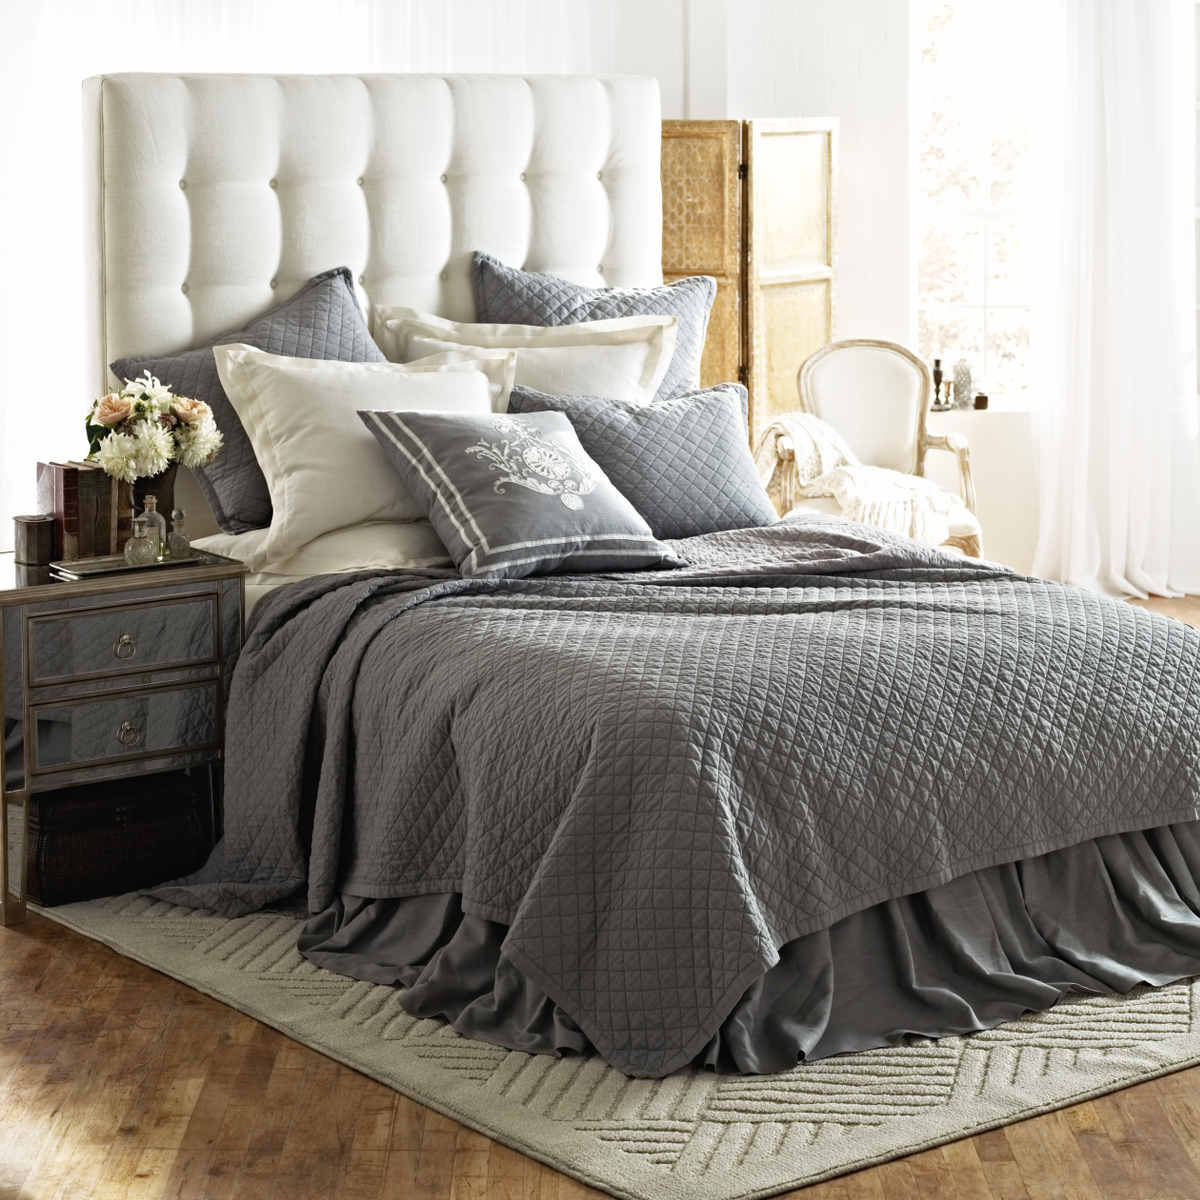 Discontinued Lili Alessandra Emily Diamond Quilted Bedding